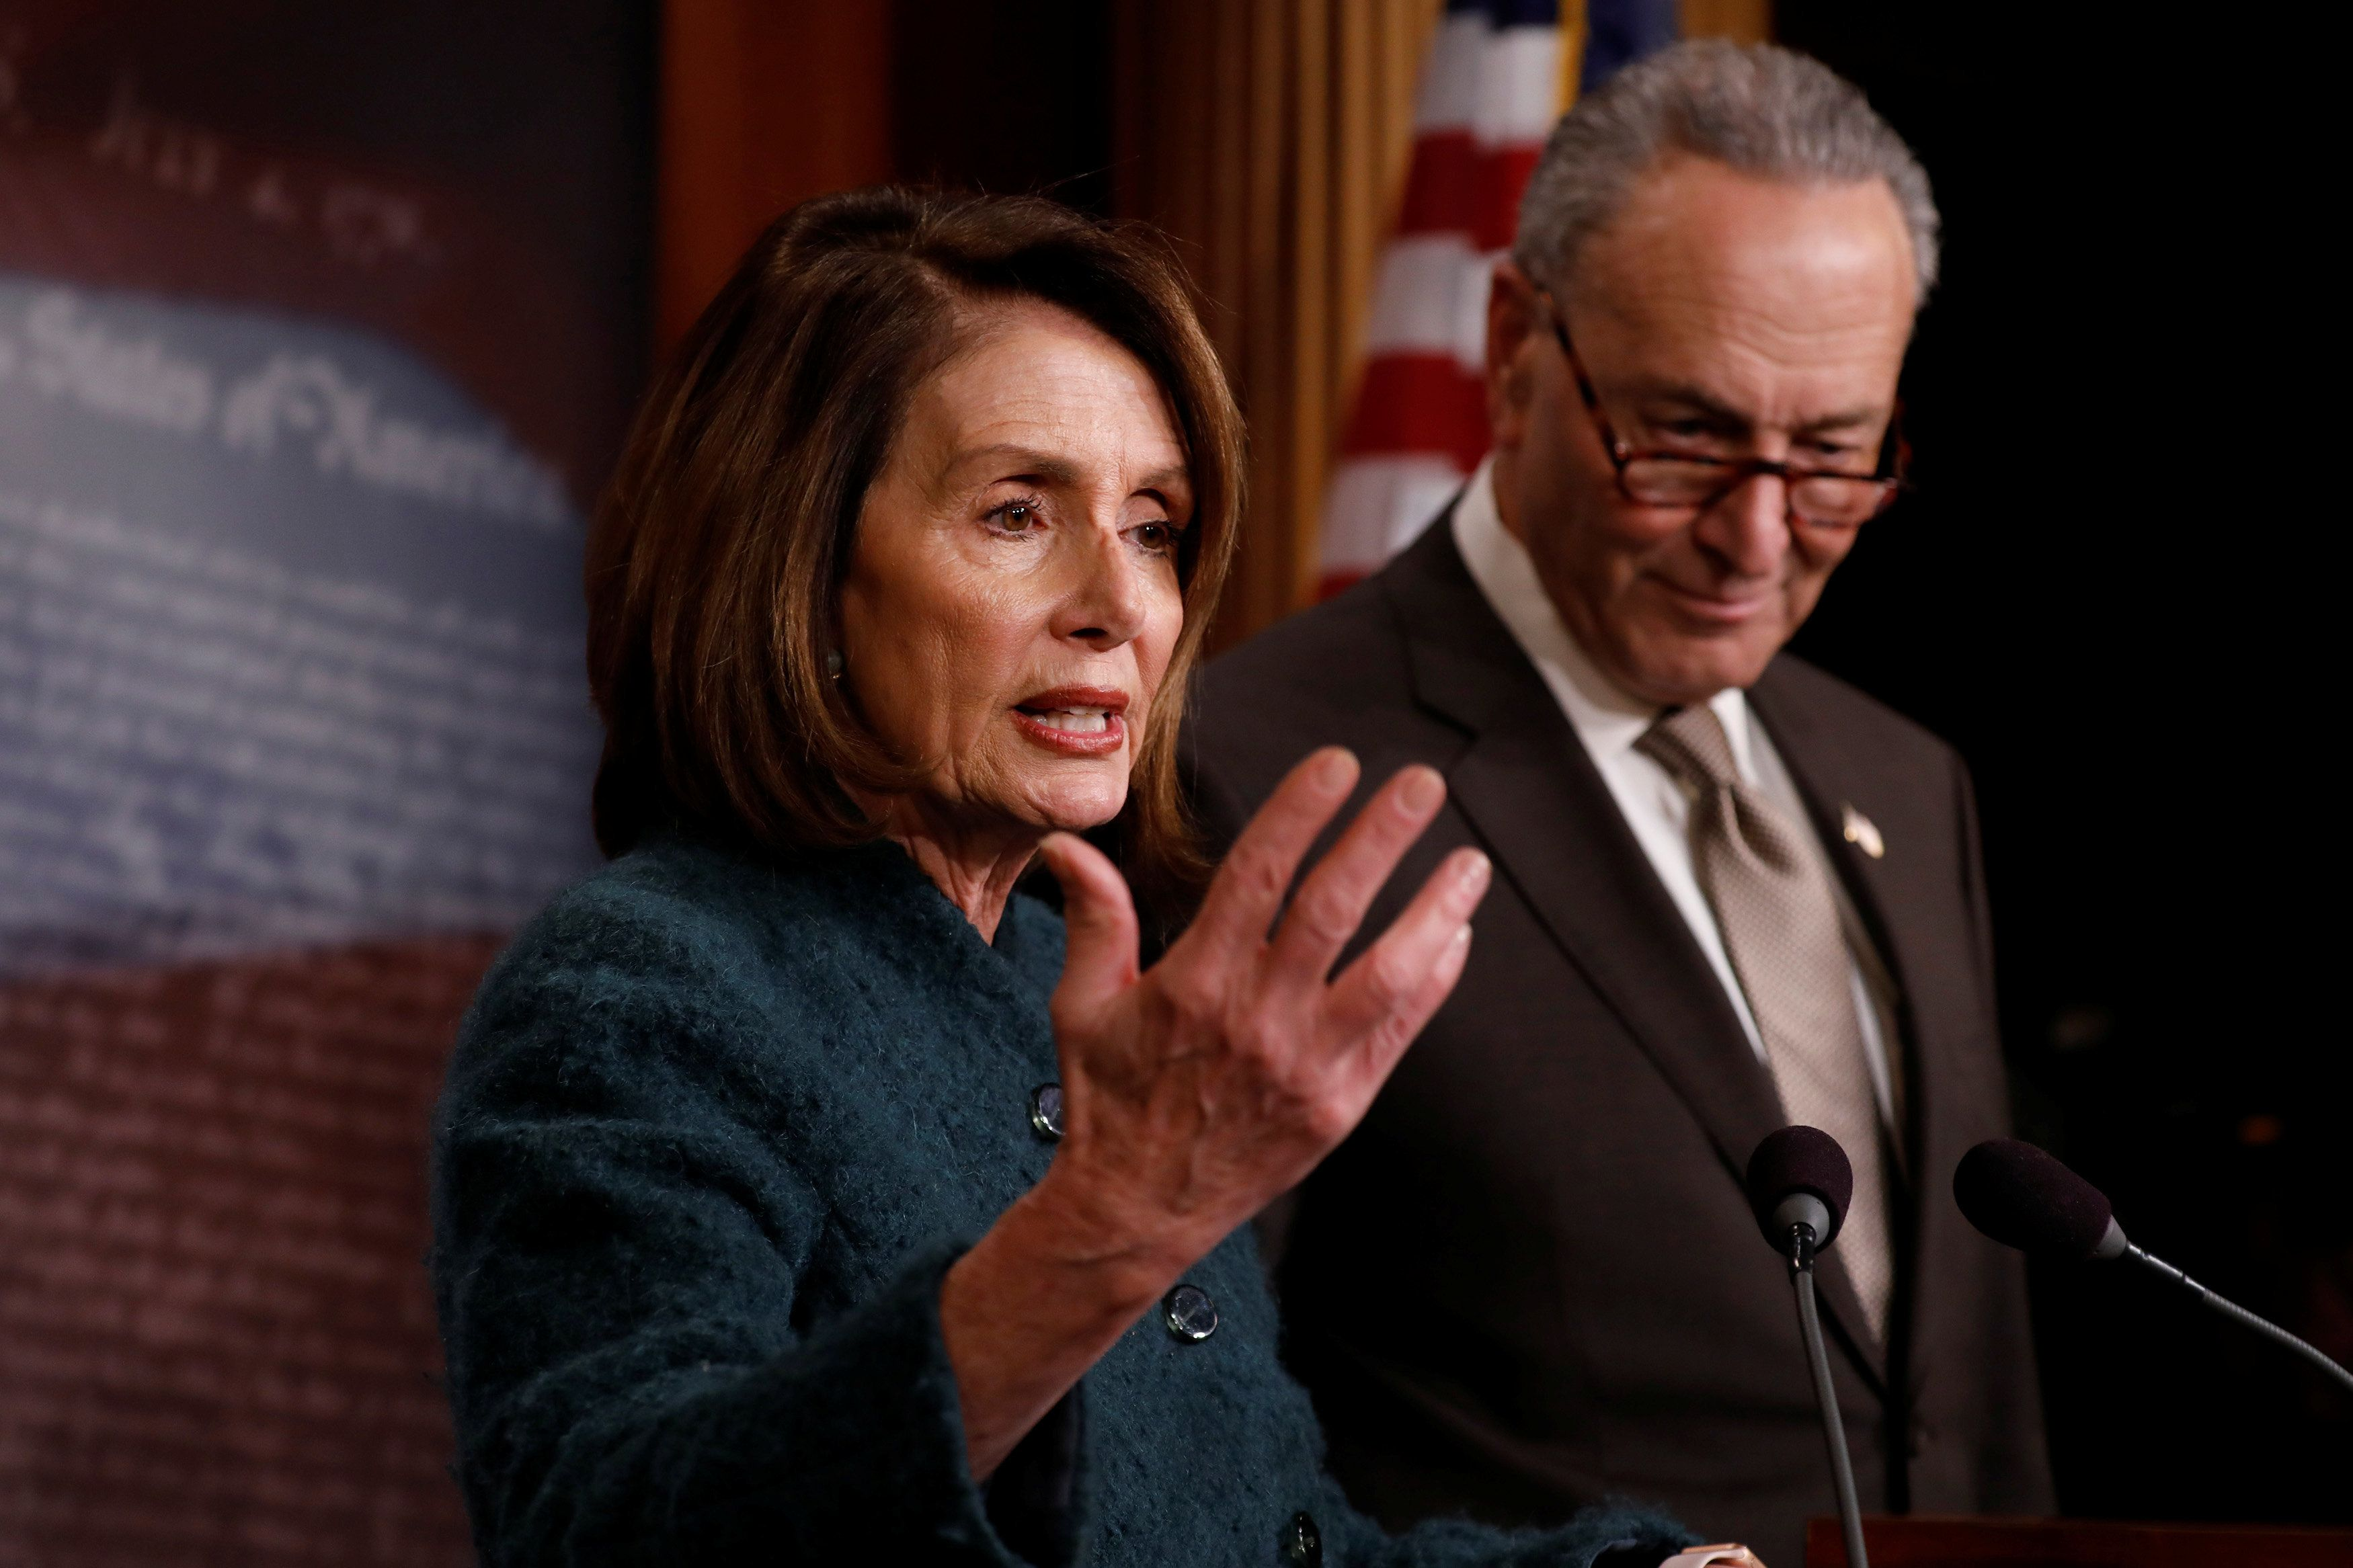 House Minority Leader Nancy Pelosi (D-Calif.) and Senate Minority Leader Chuck Schumer (D-N.Y.) at a news conference in March